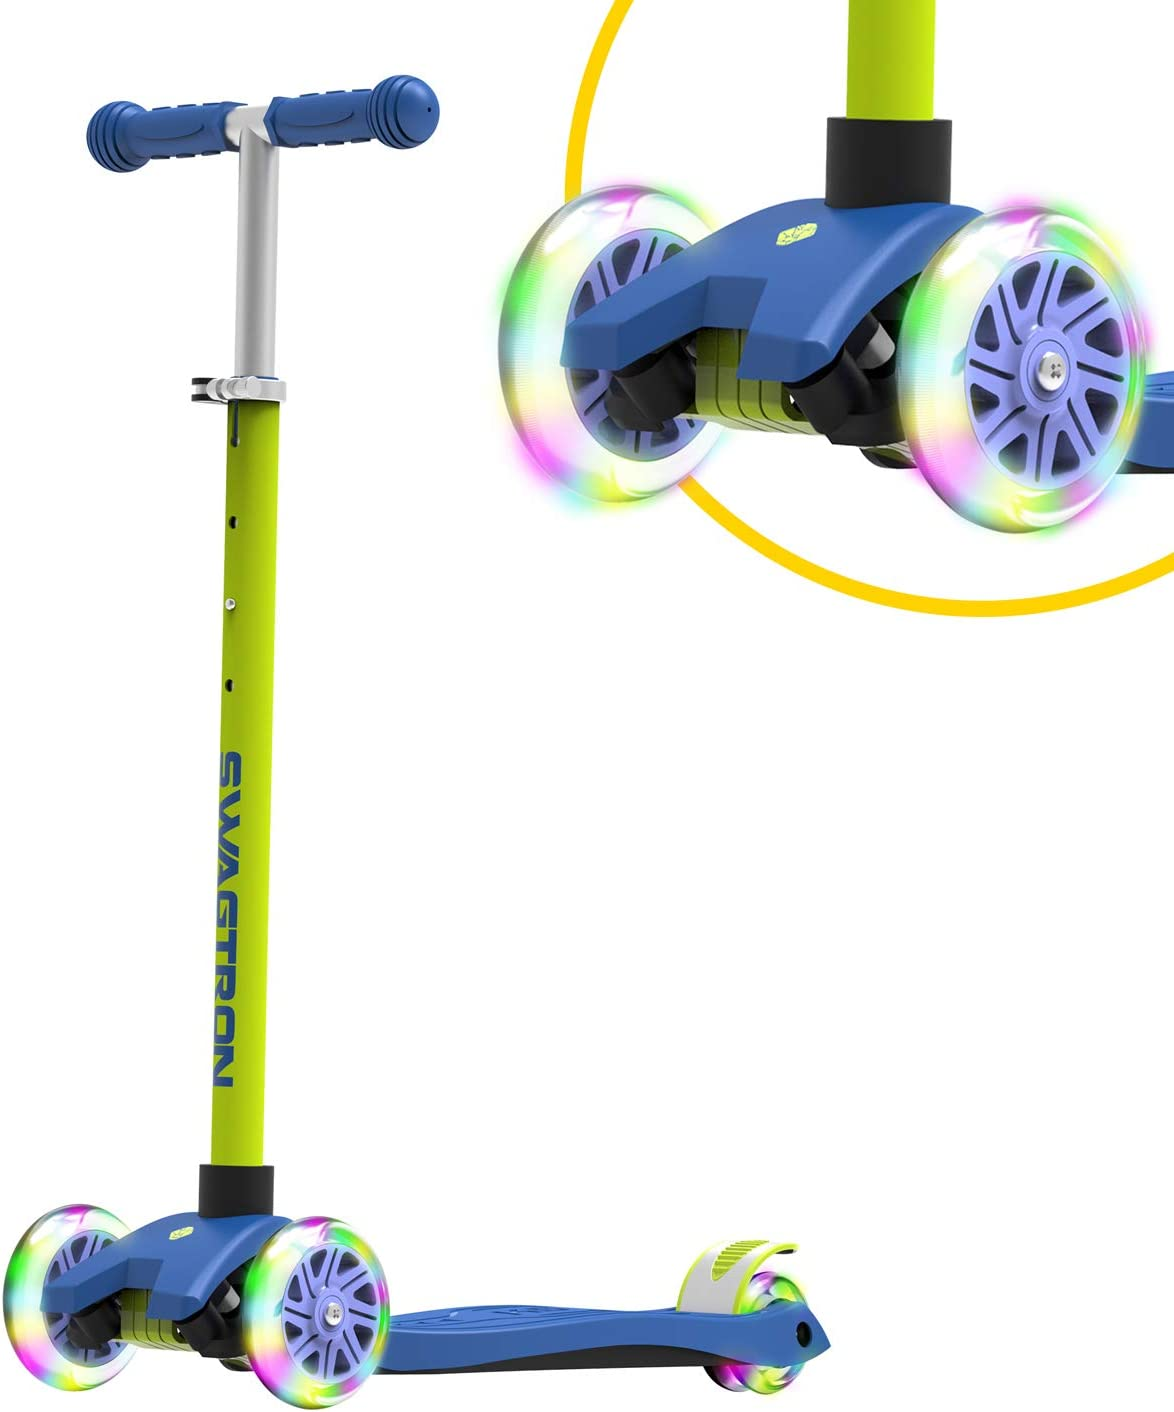 Swagtron K5 Kids Scooter